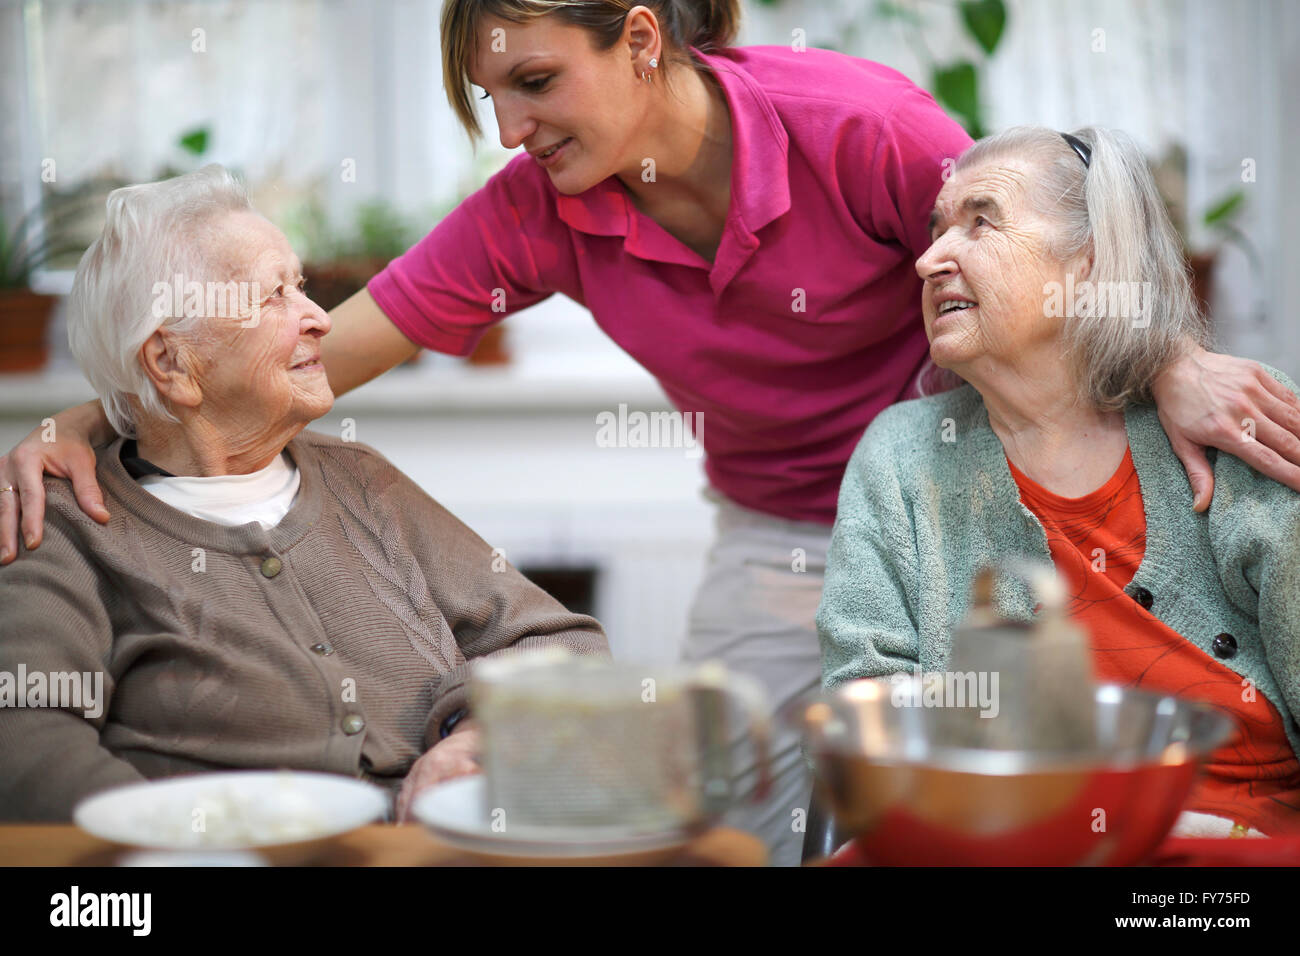 Two elderly women, 78 years and 88 years, and a carer for the elderly, 31 years, leisure activities in a nursing - Stock Image